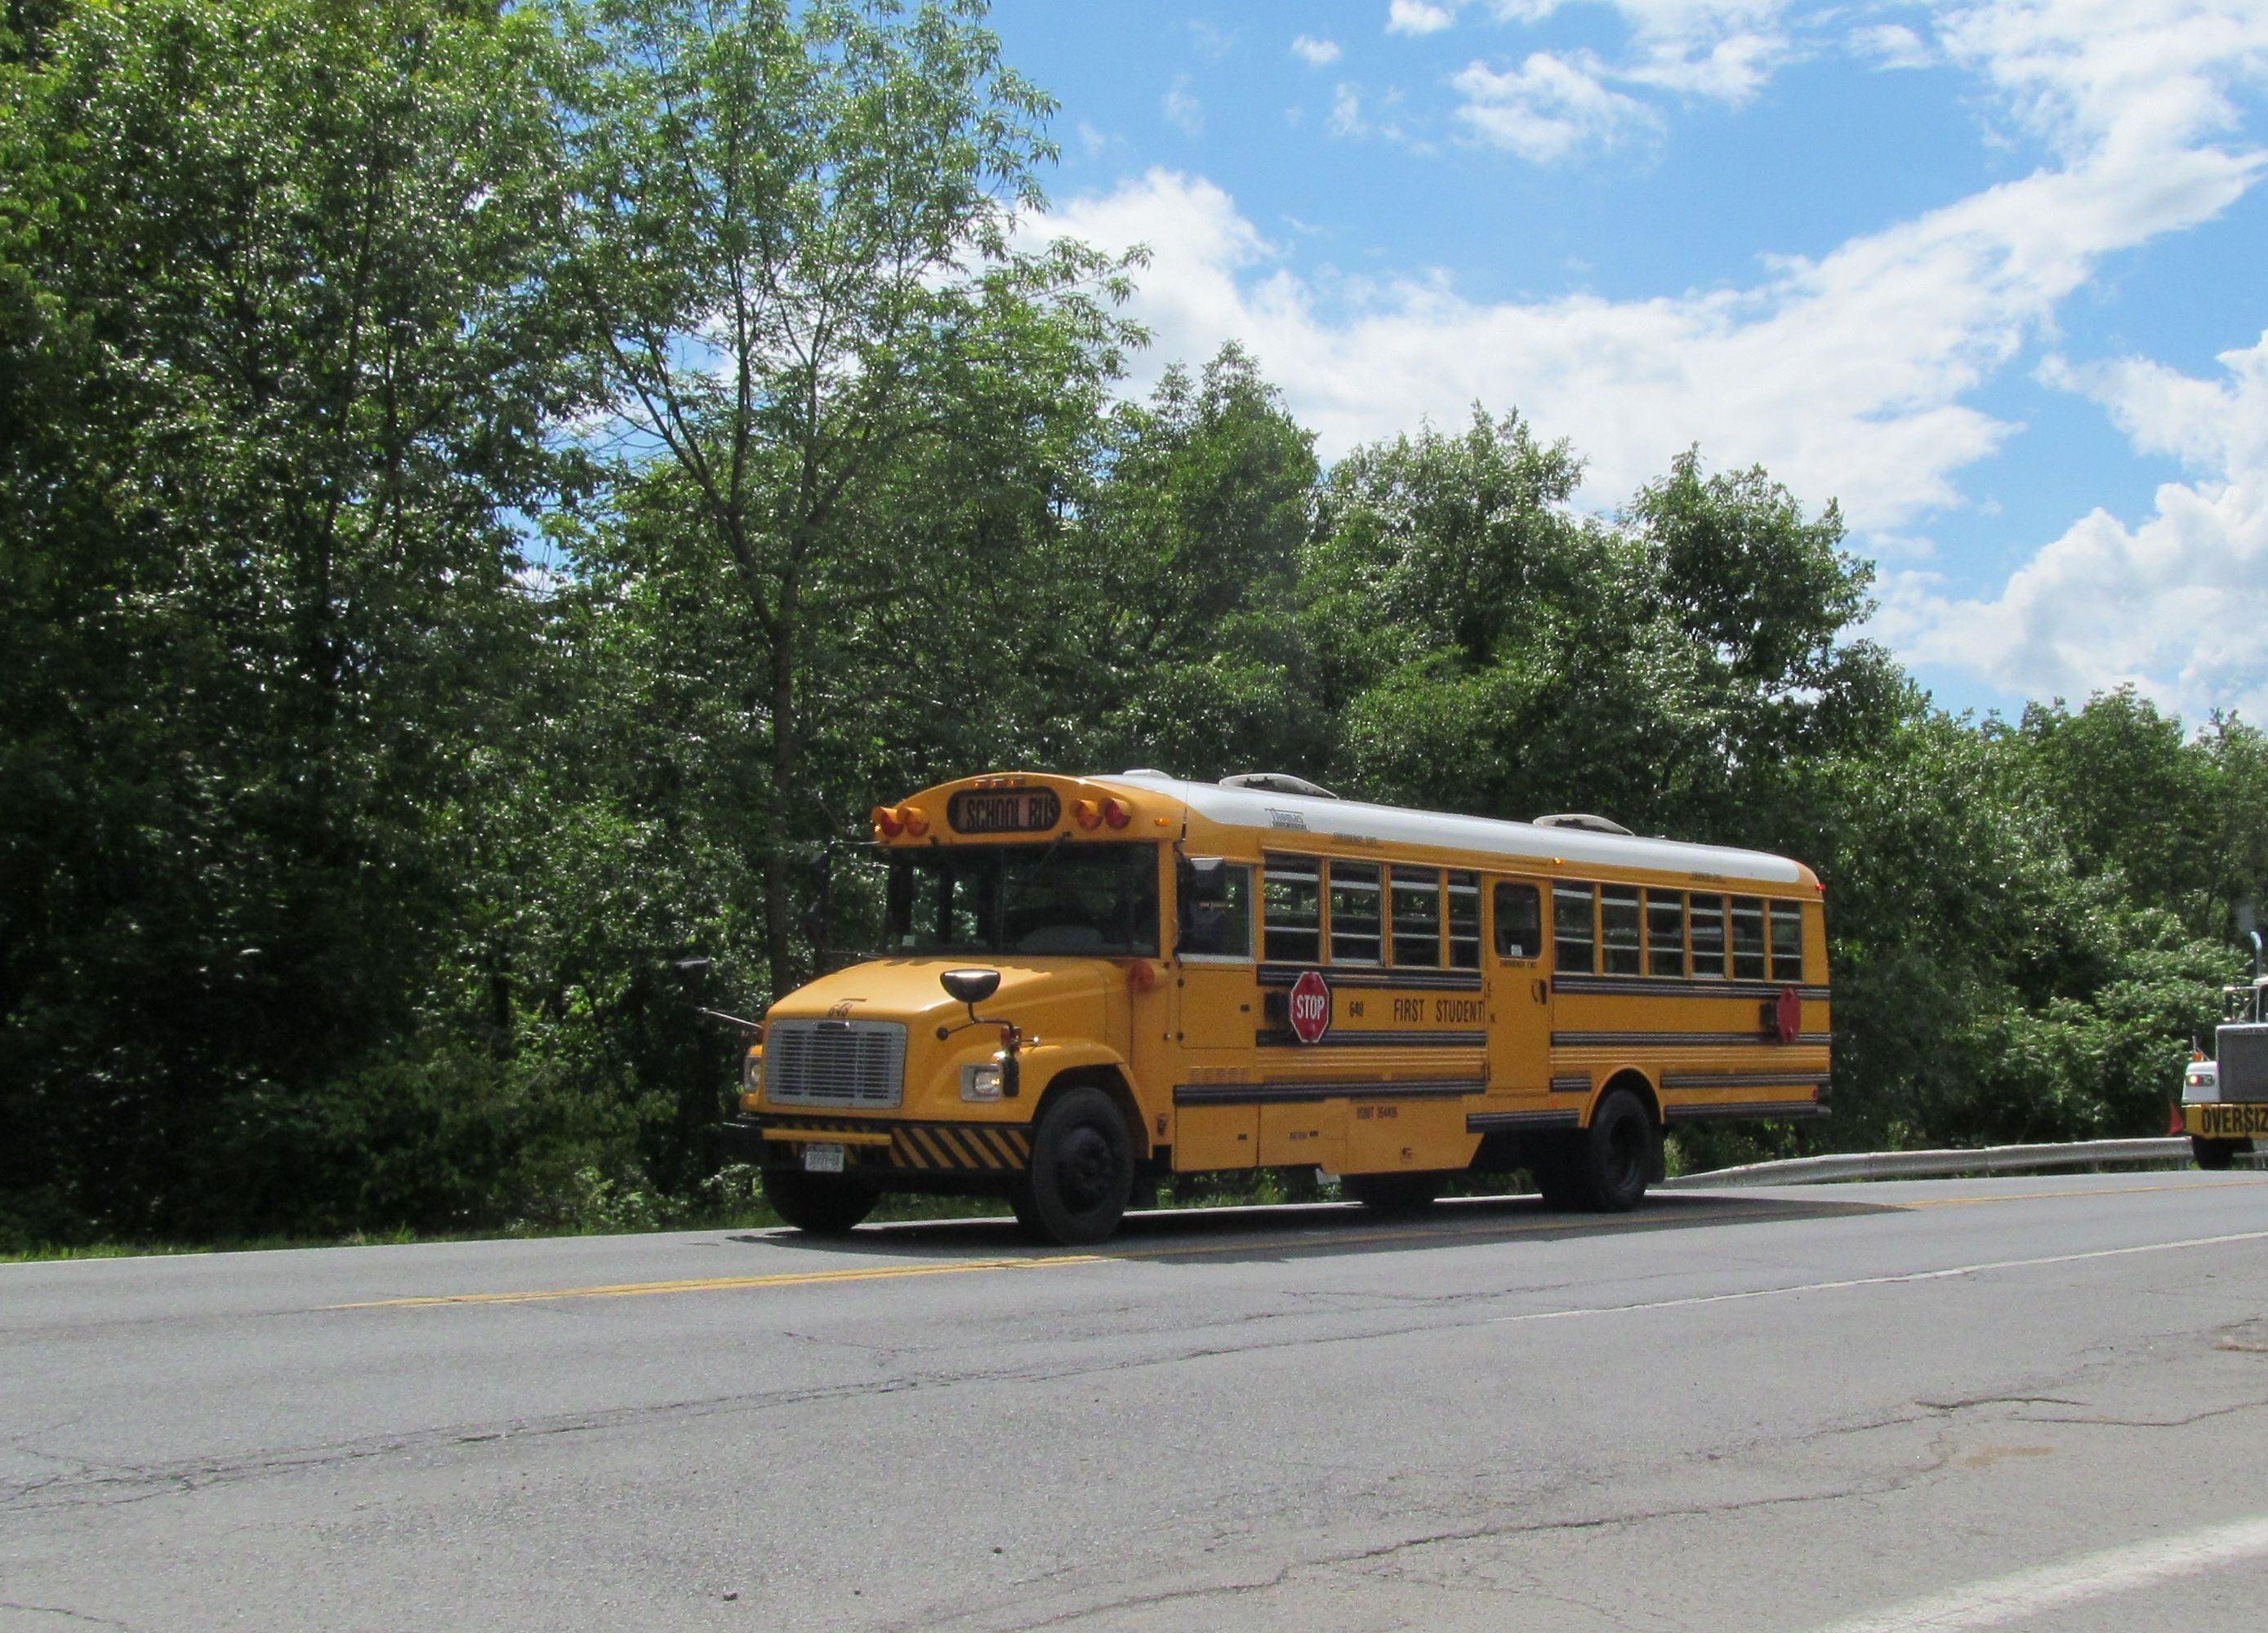 #648 subbing for buses Wallkill due to their... lack of ...